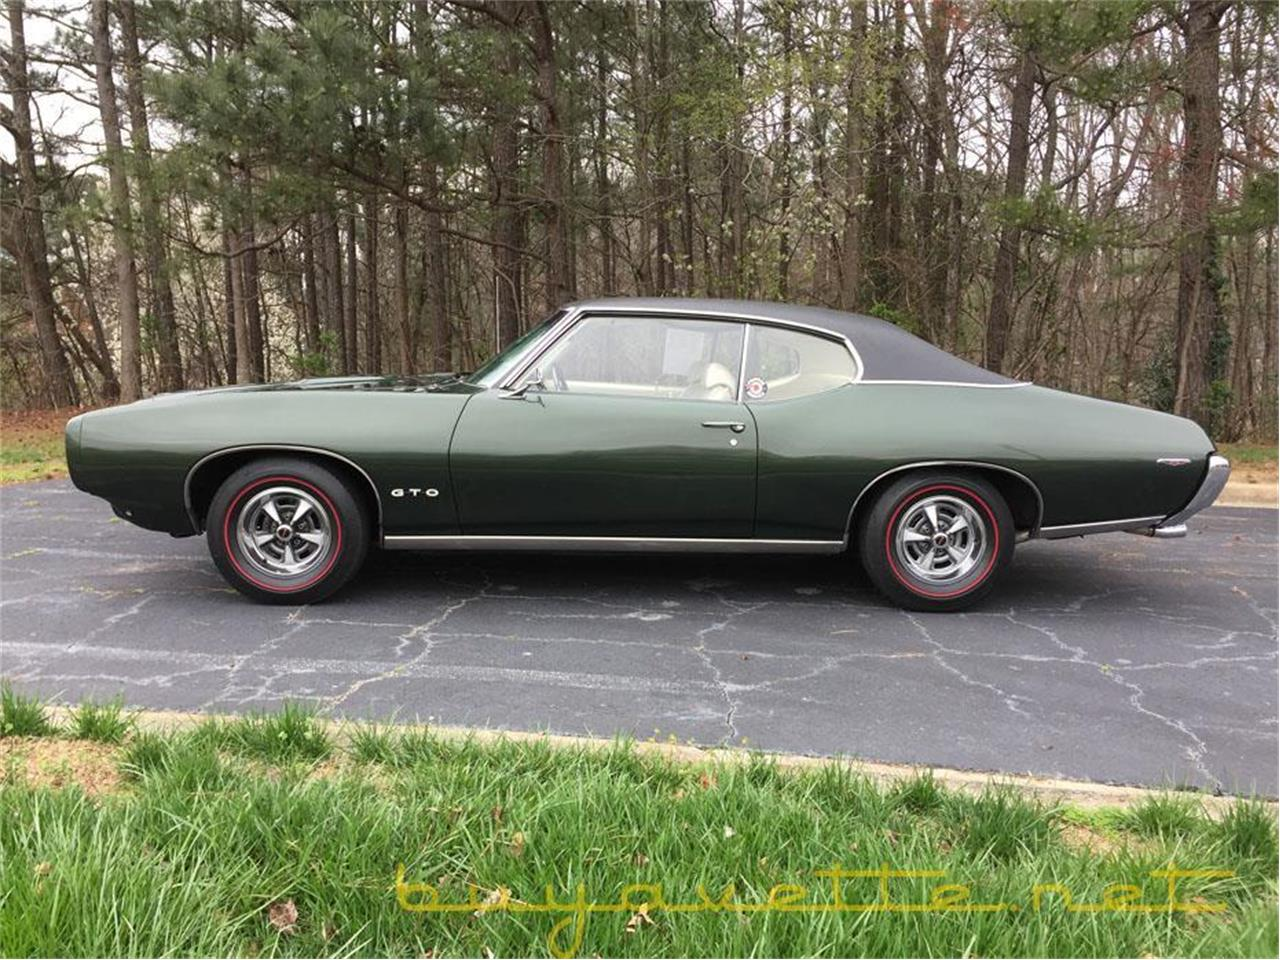 Large Picture of 1969 Pontiac GTO located in Georgia - $37,999.00 - MZ78